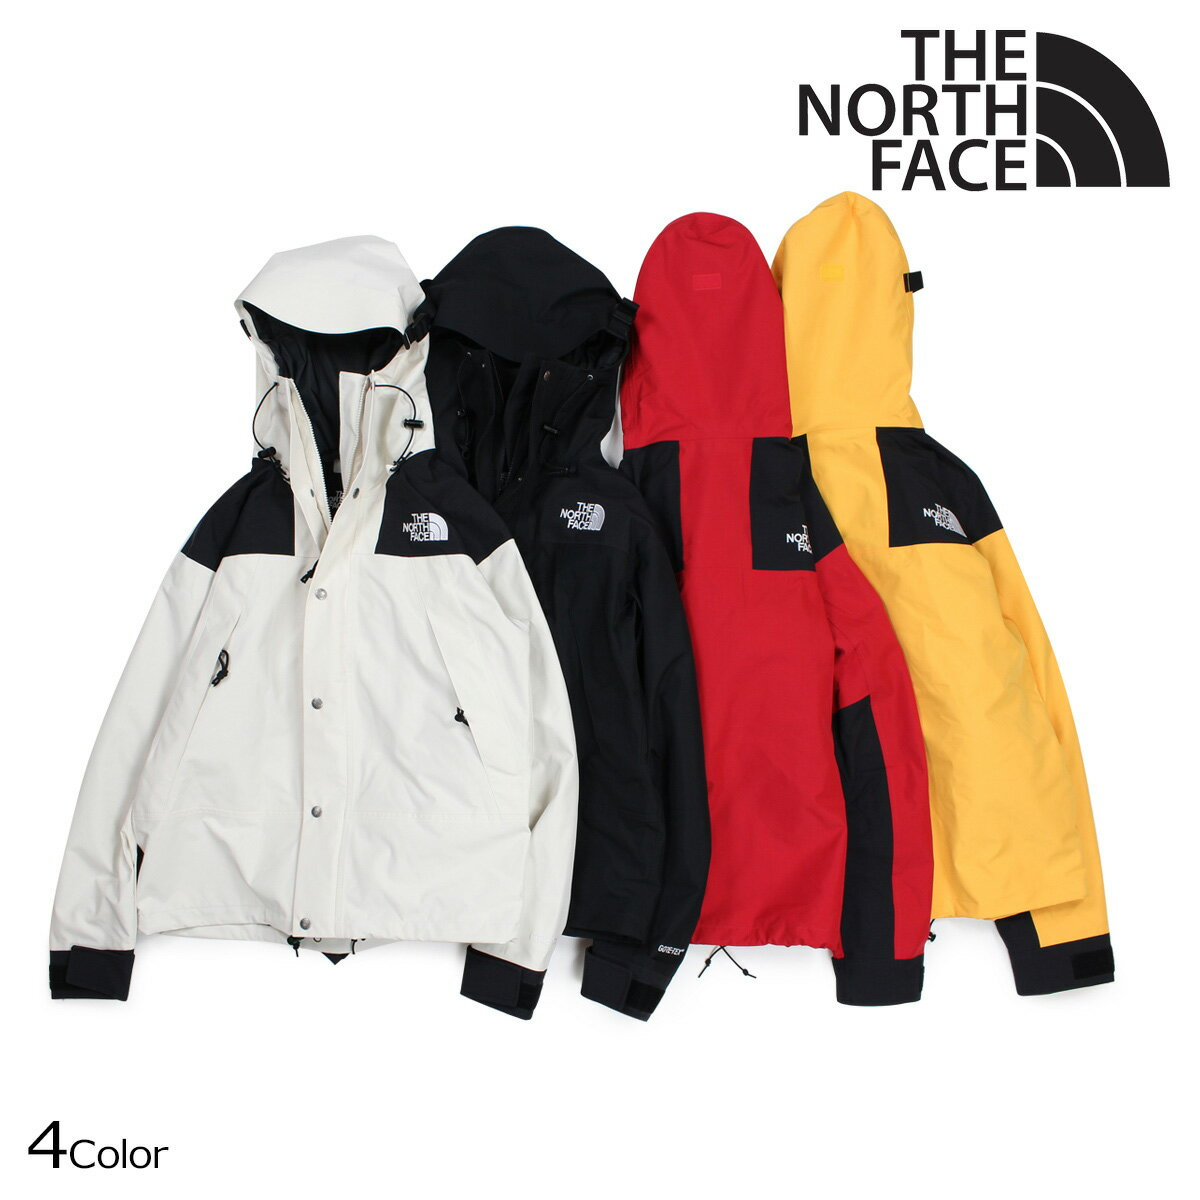 Sugar Tex Online Face ShopThe Jacket Gore North 4A5Lqc3Rj